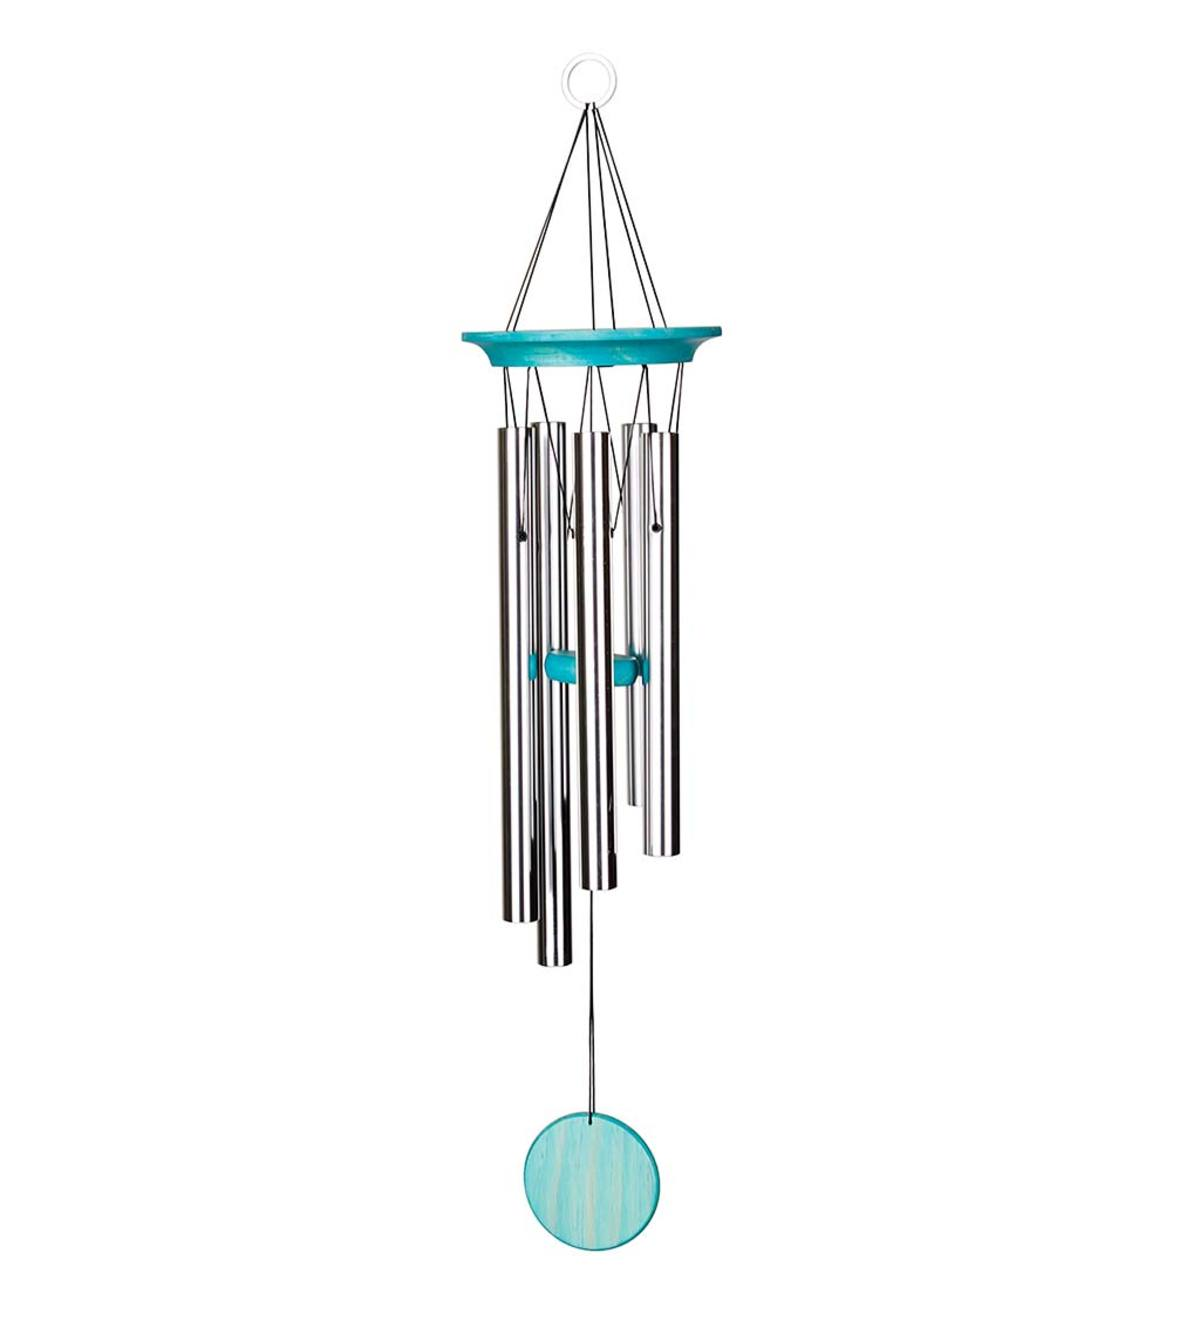 Turquoise-Colored Aluminum Garden Chime